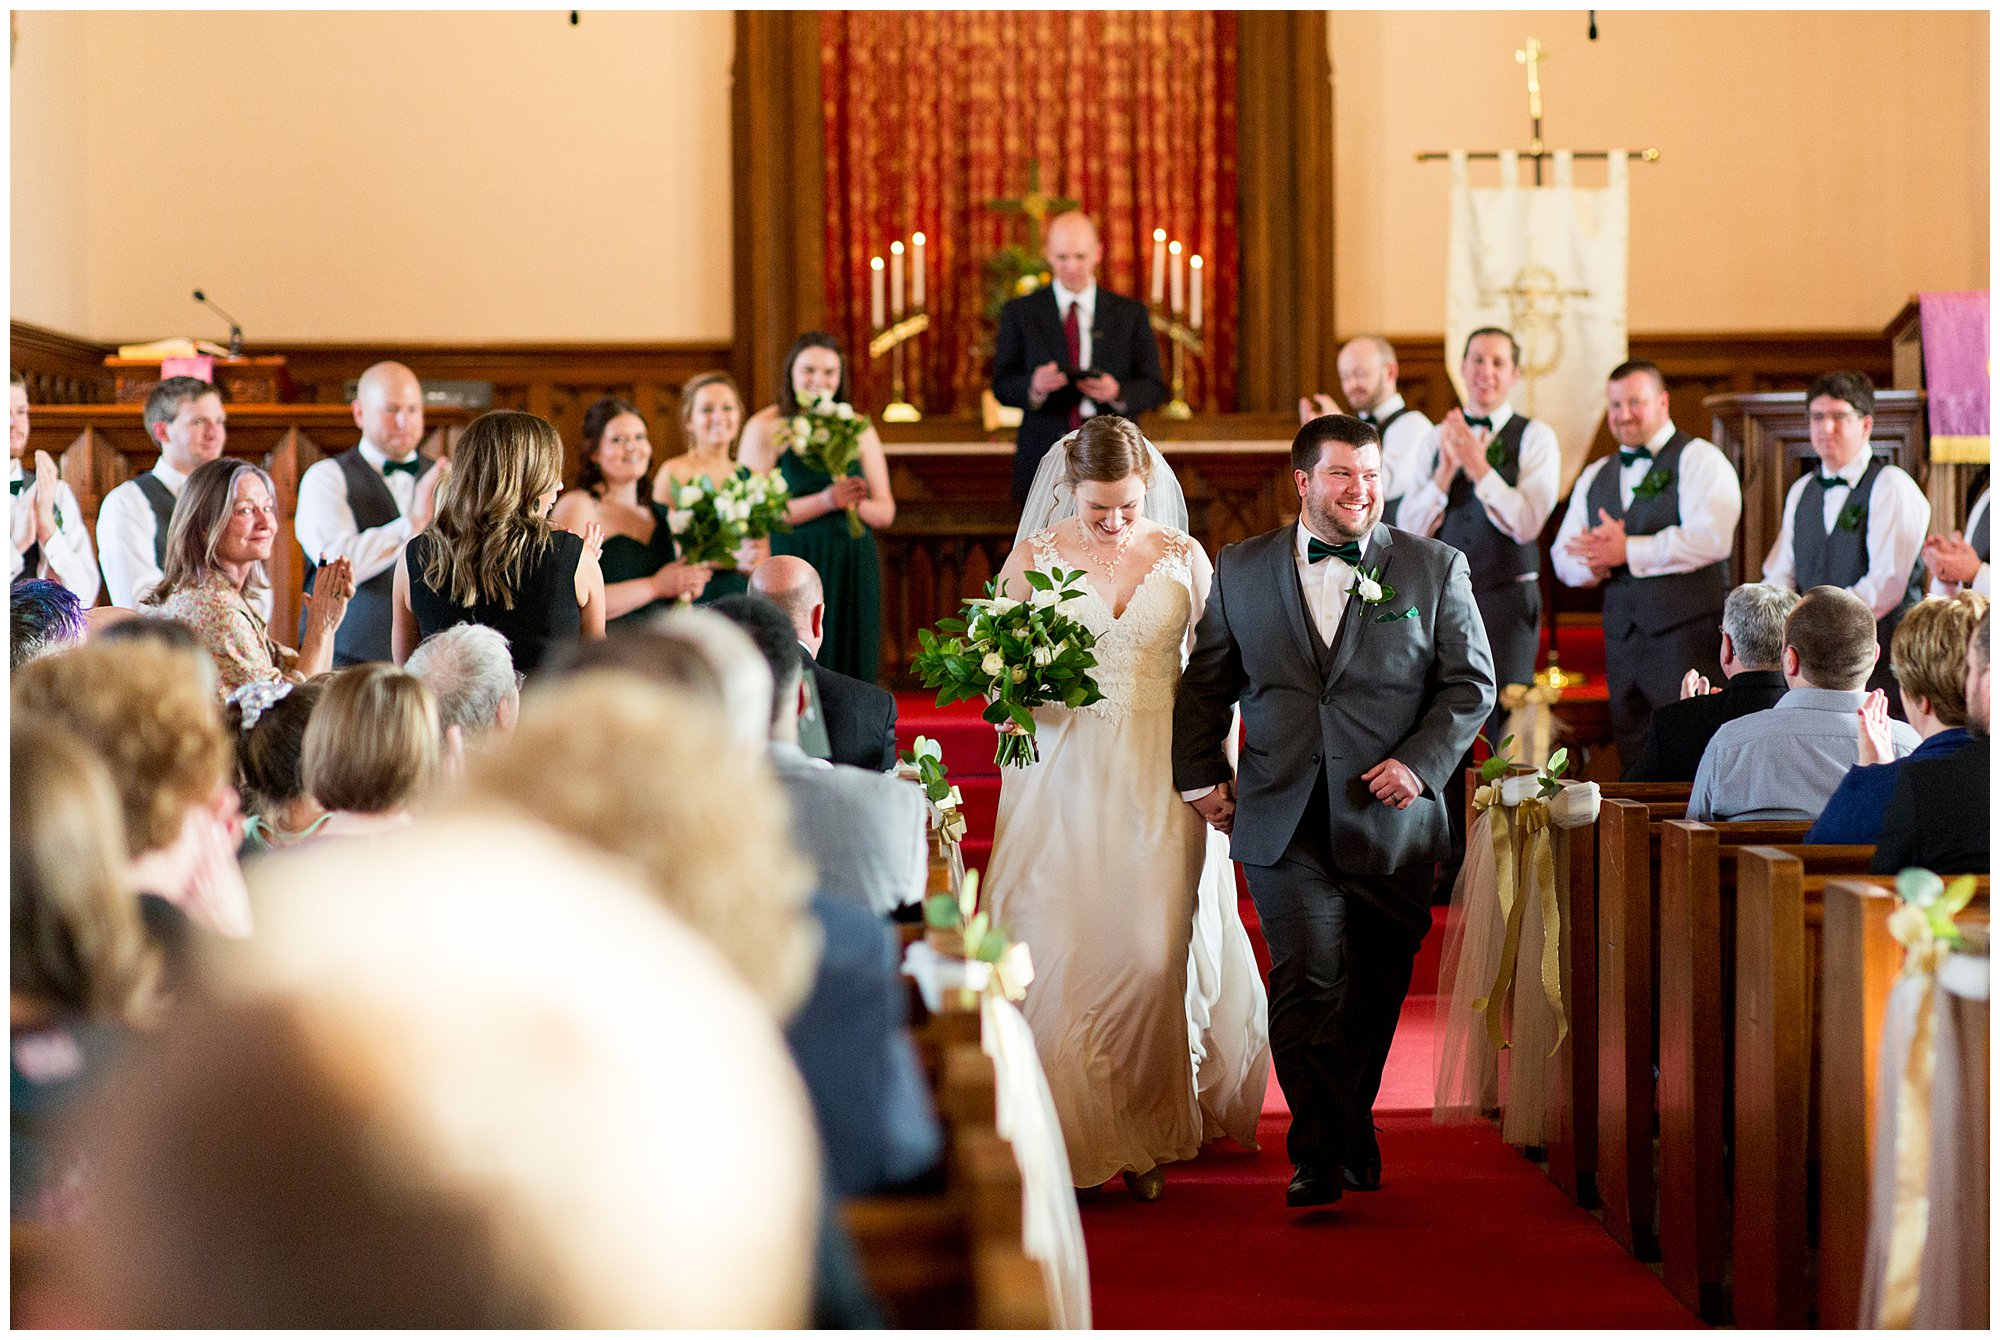 bride and groom exit Irvington United Methodist Church after wedding ceremony in Indianapolis